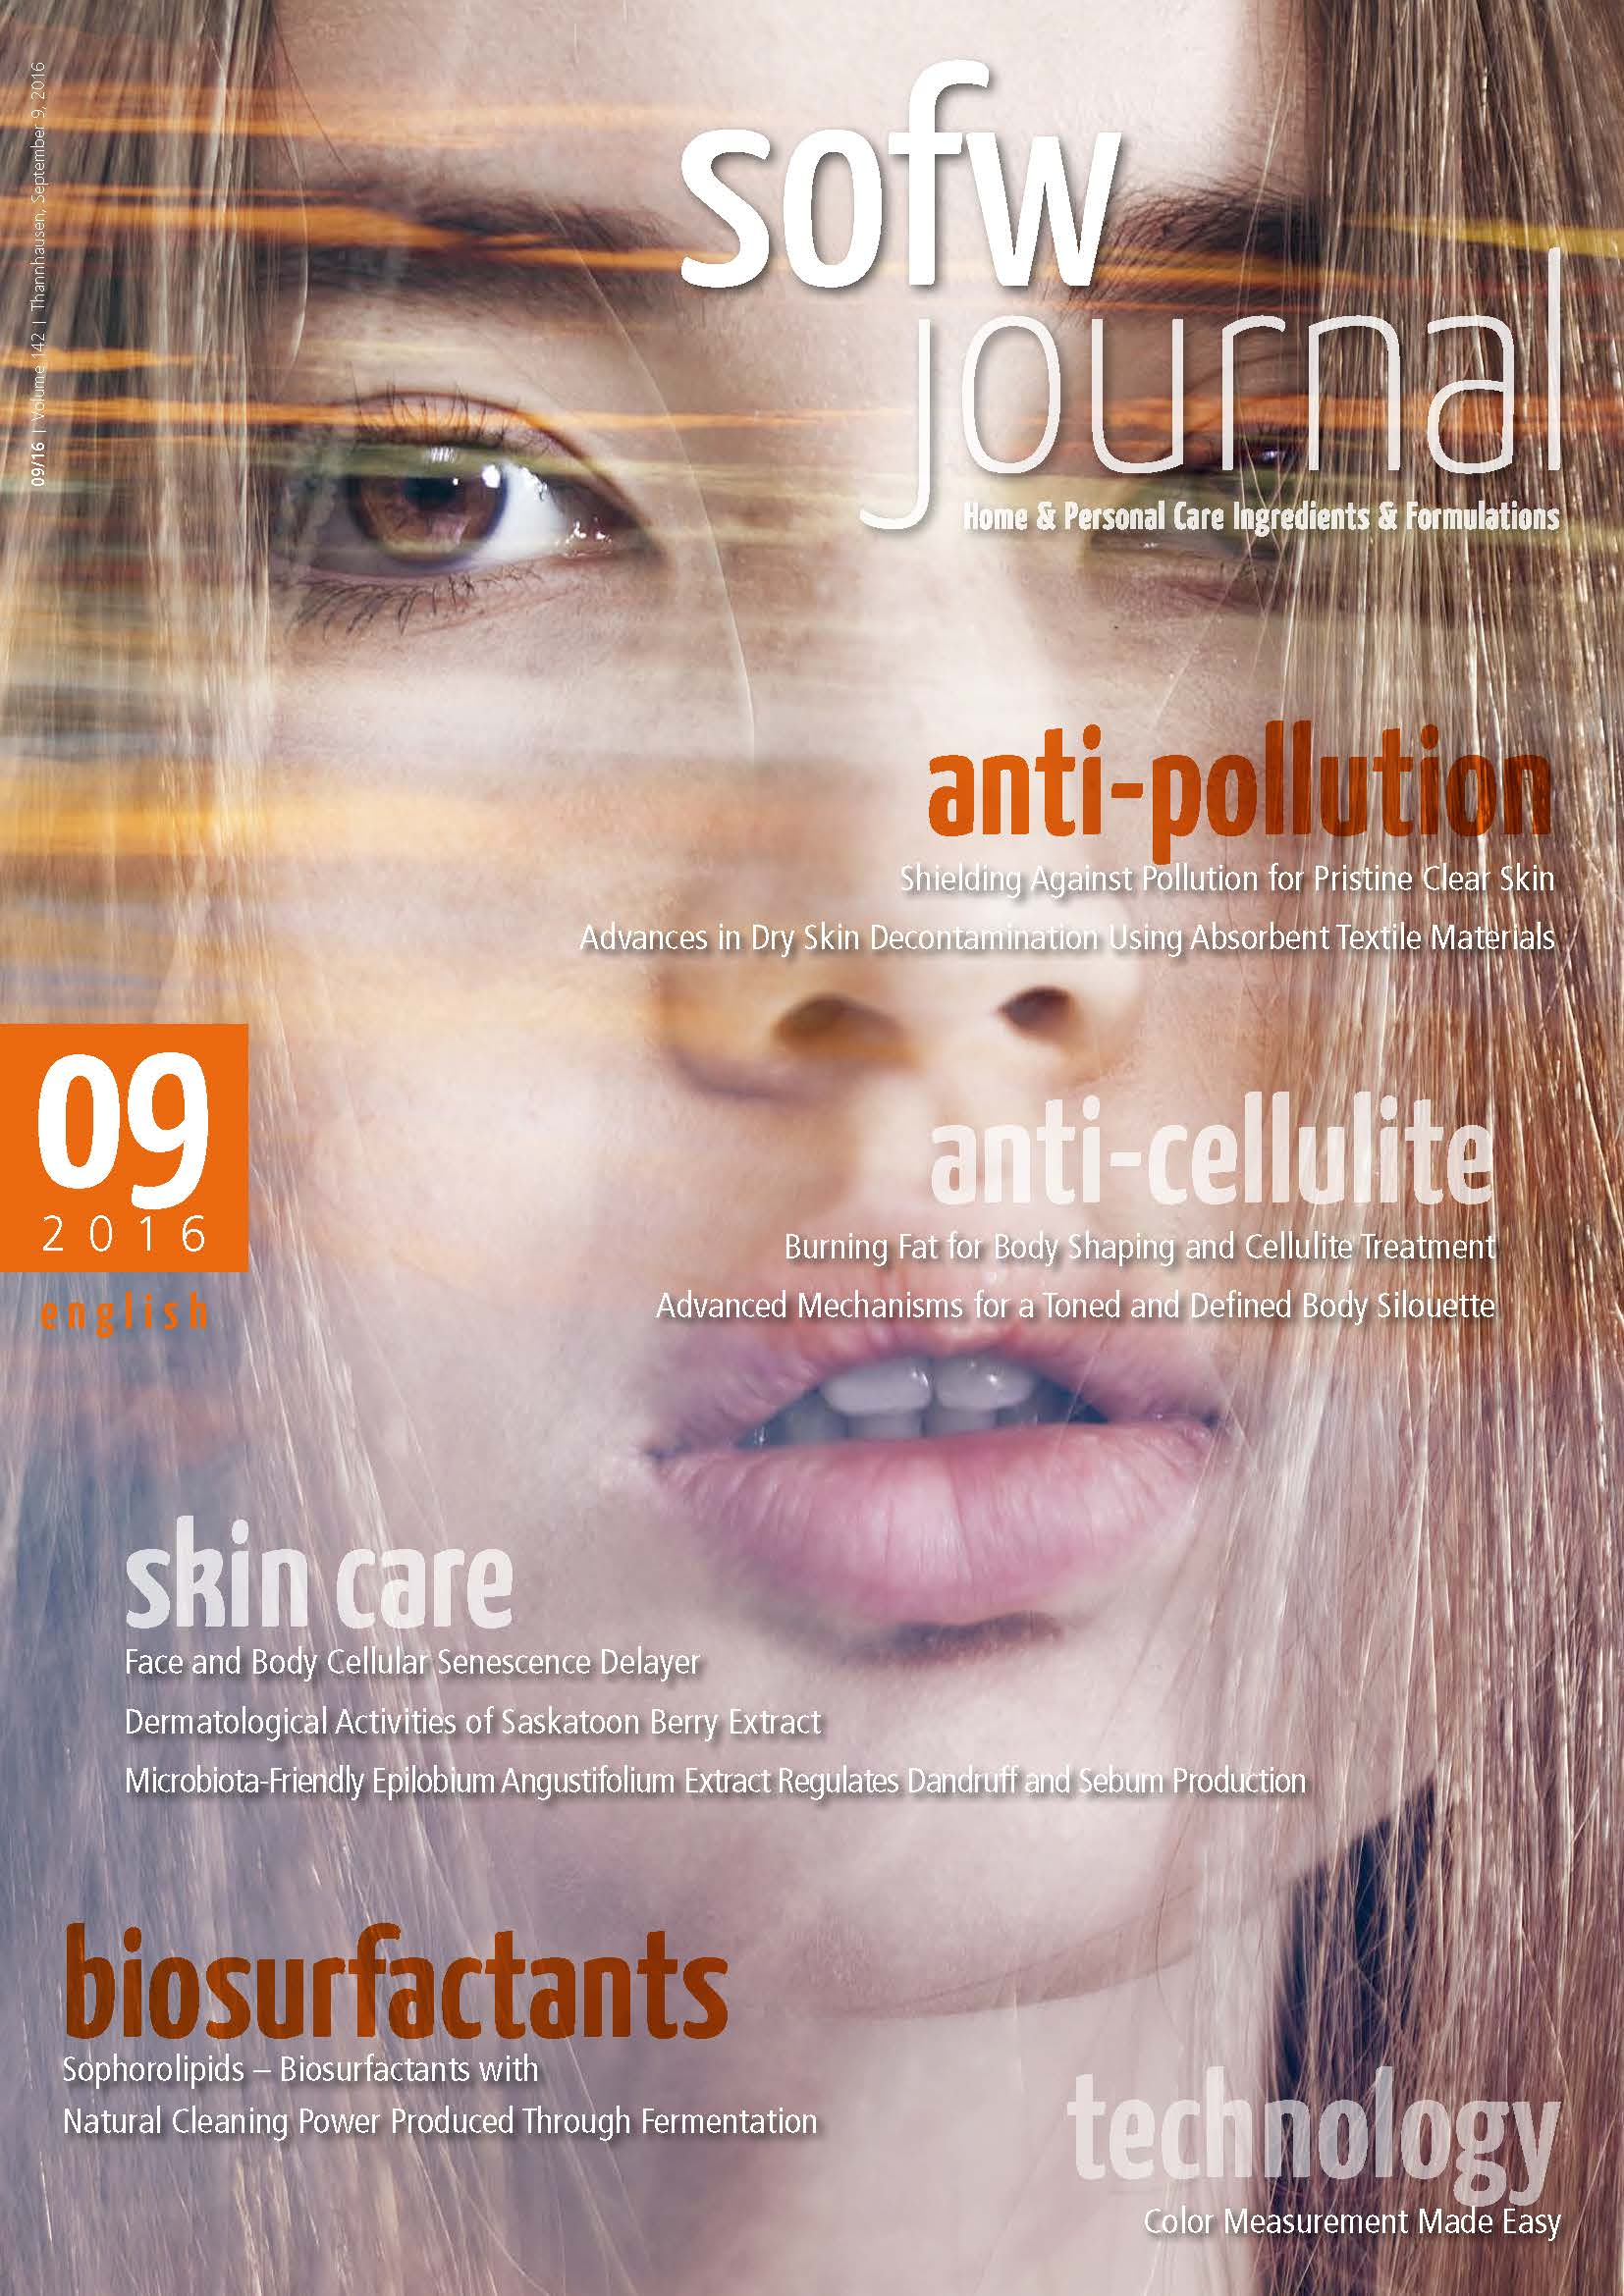 sofwjournal_en_2016_09_cover